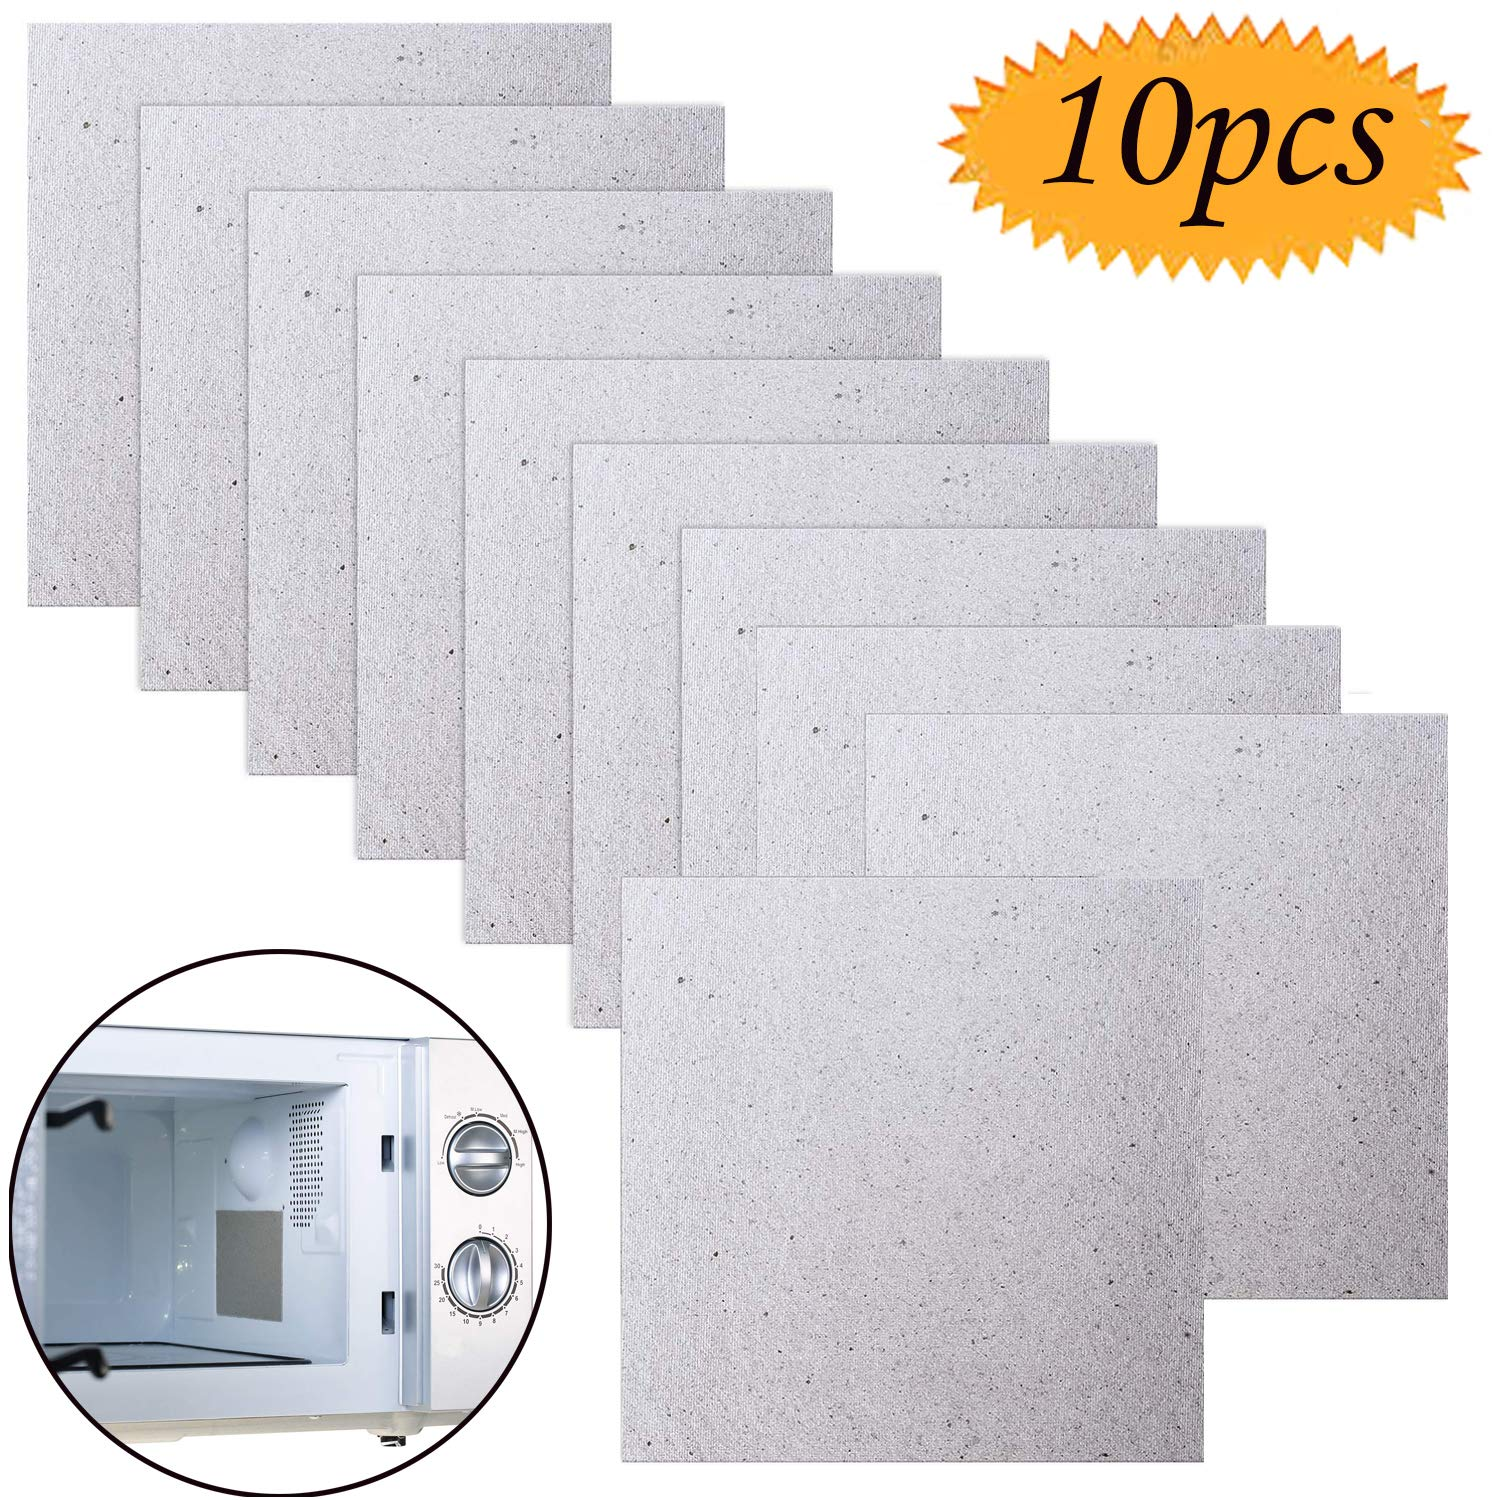 Microwave Mica, Grocery House 10 Pack Waveguide Cover Mica Plates Sheets Microwave Oven Repairing Part Universal Cut to Size 13cm x 13cm Microwave Plate for Home Kitchen Appliances